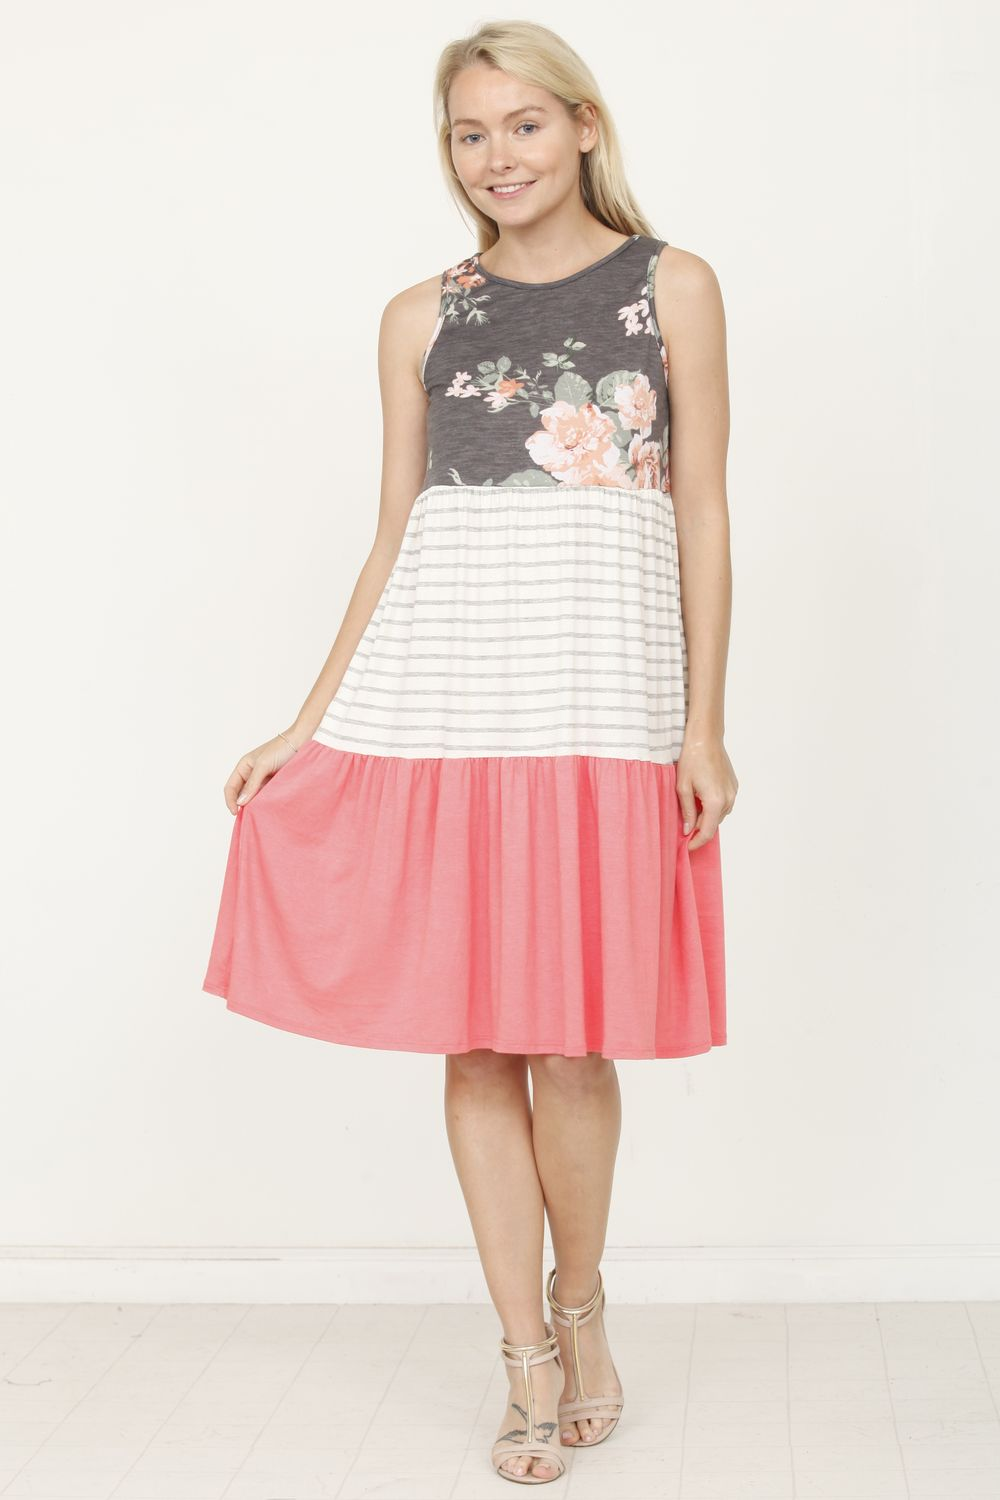 Charcoal Floral & Coral Tiered Sleeveless Mini Dress